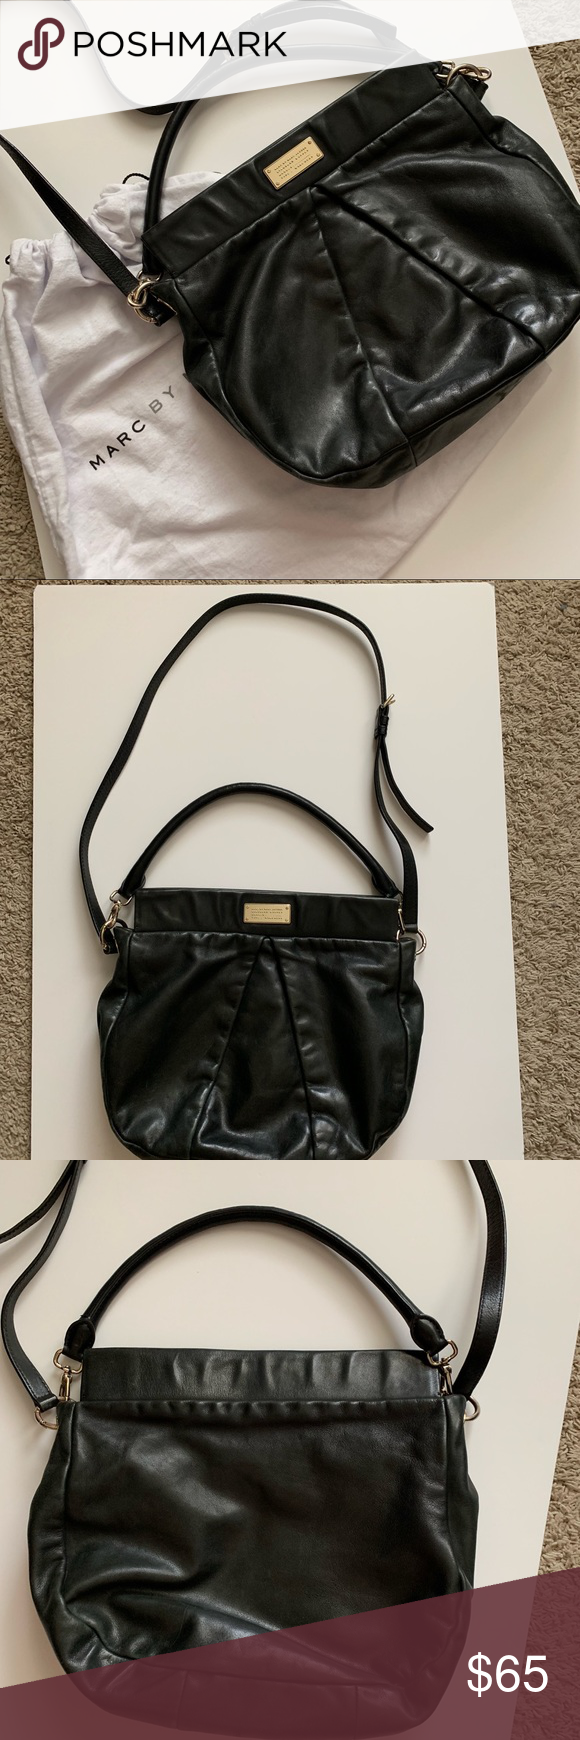 Best Marc By Marc Jacobs Handbag Marc Jacobs Handbag Marc 400 x 300